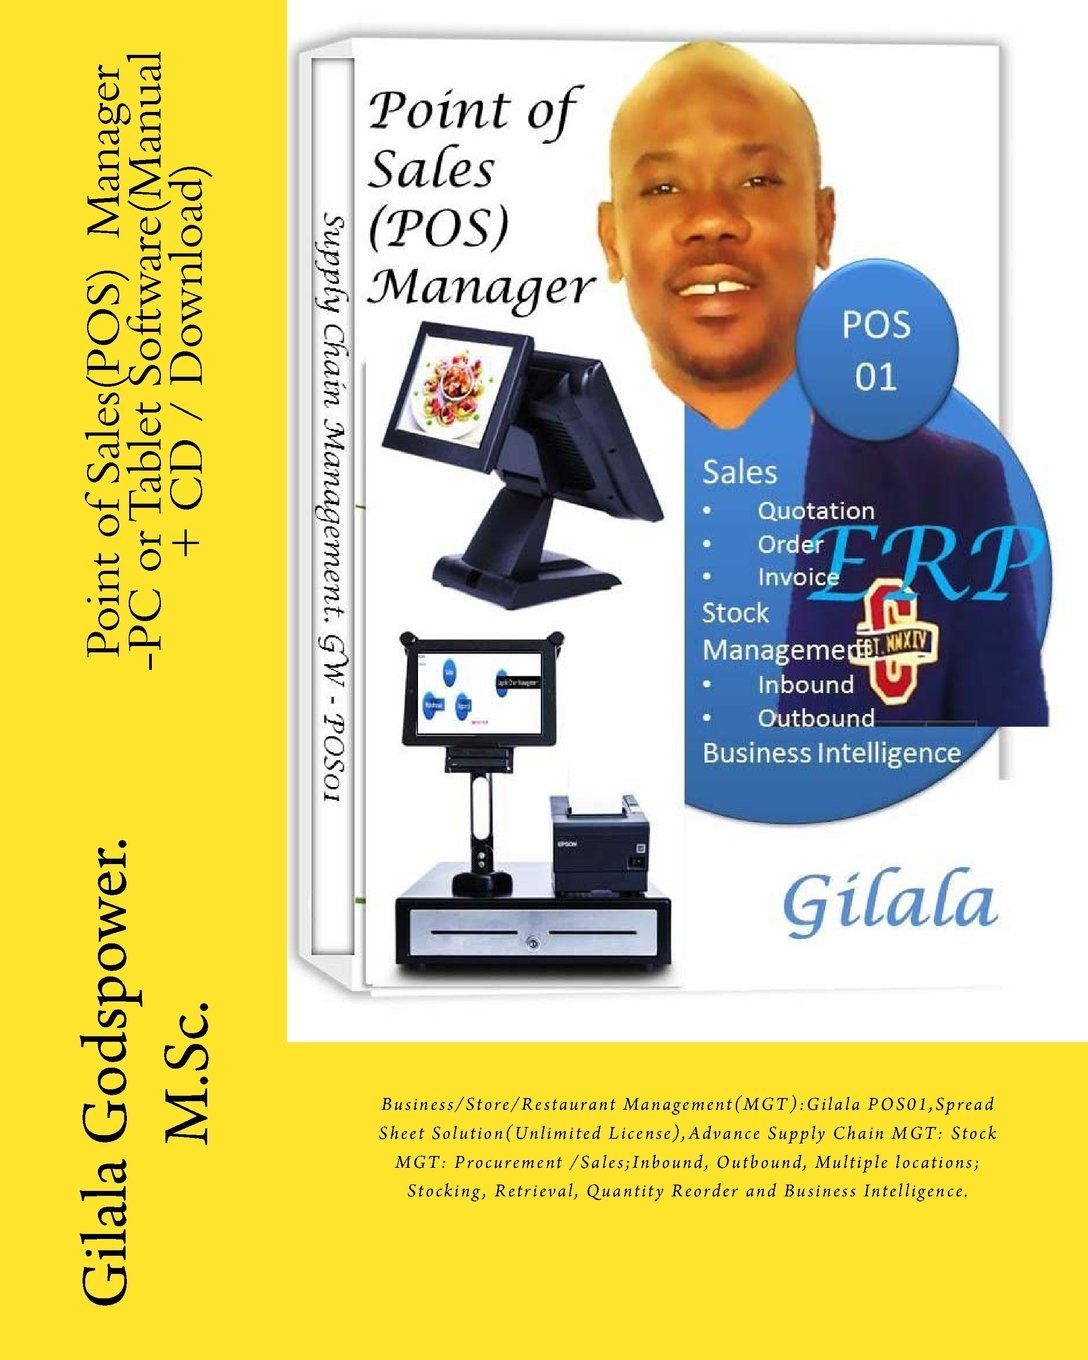 Read Online Point of Sales(POS) Manager -PC or Tablet Software(Manual + CD/Download): Business/Store/Restaurant Management(MGT):Gilala POS01,Spread Sheet Reorder and Business Intelligence. (Volume 1) pdf